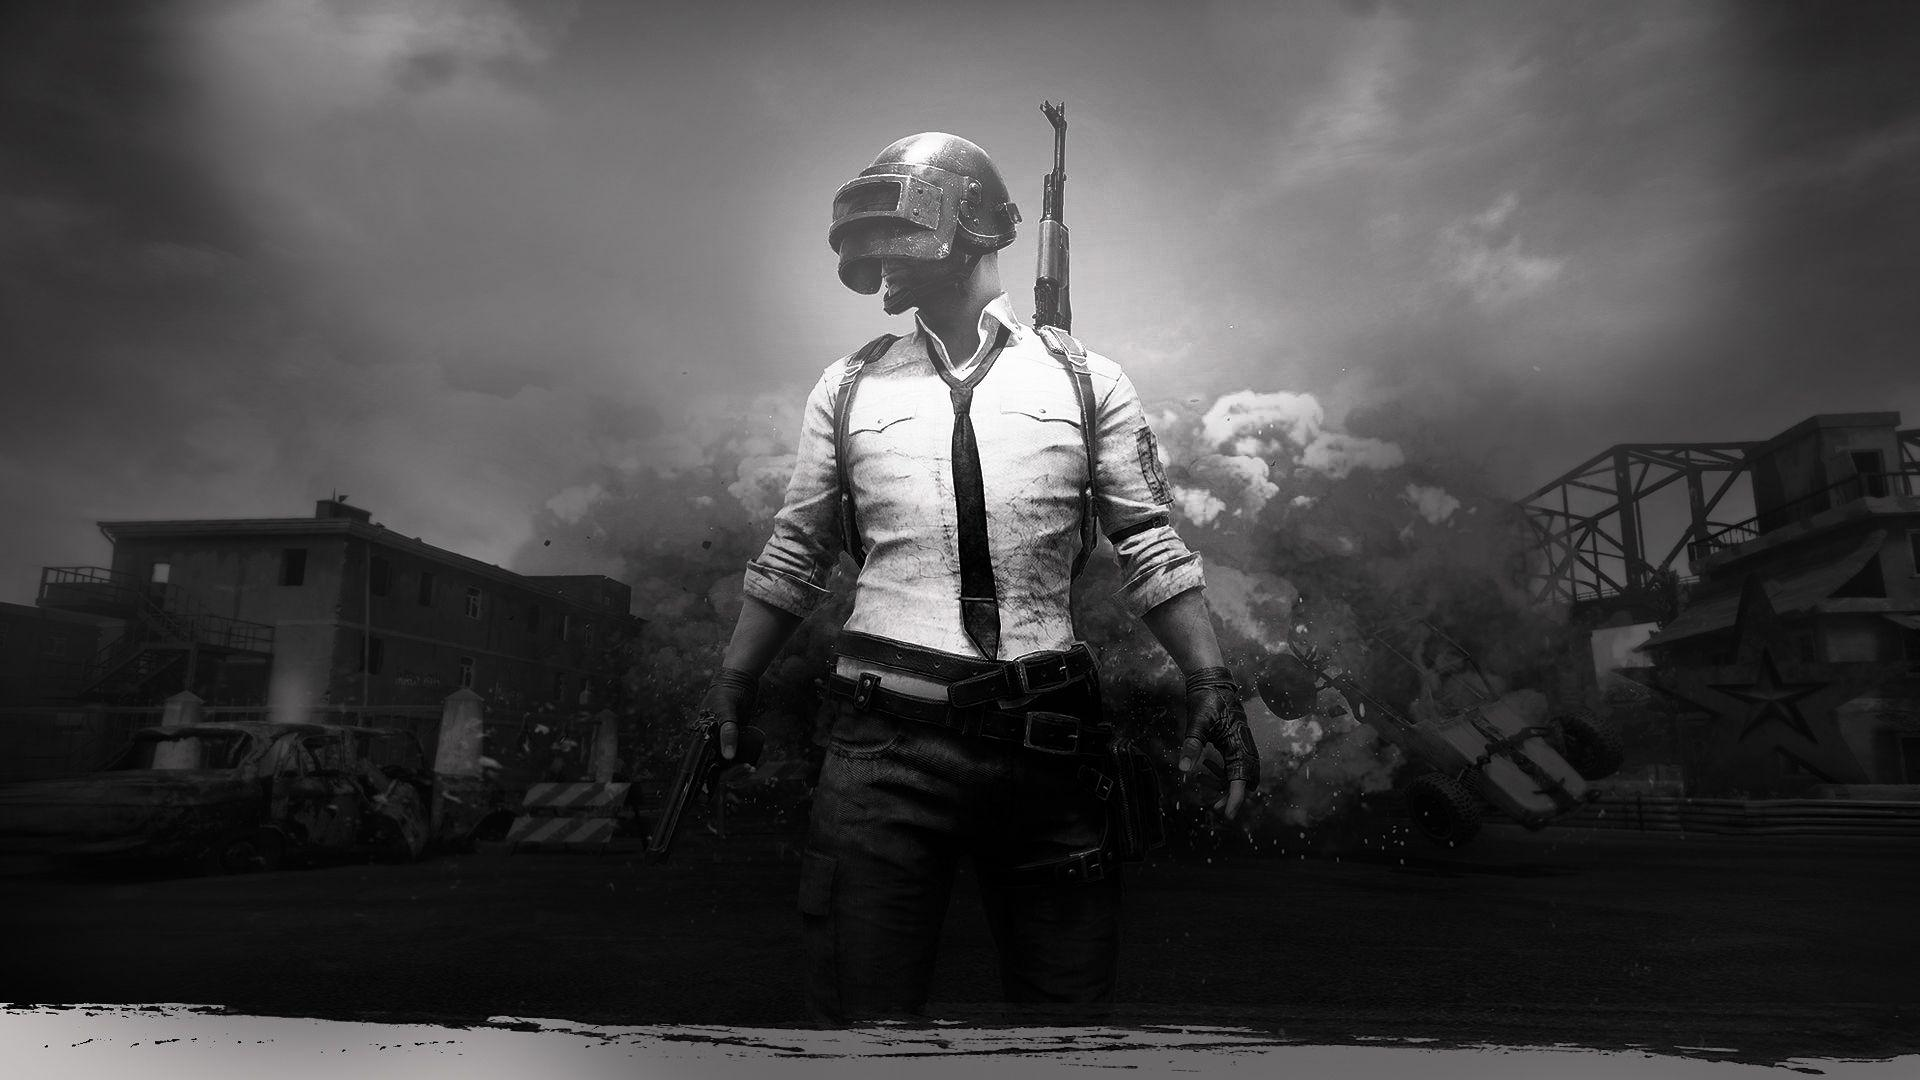 Black And White Pubg Wallpapers Wallpaper Cave